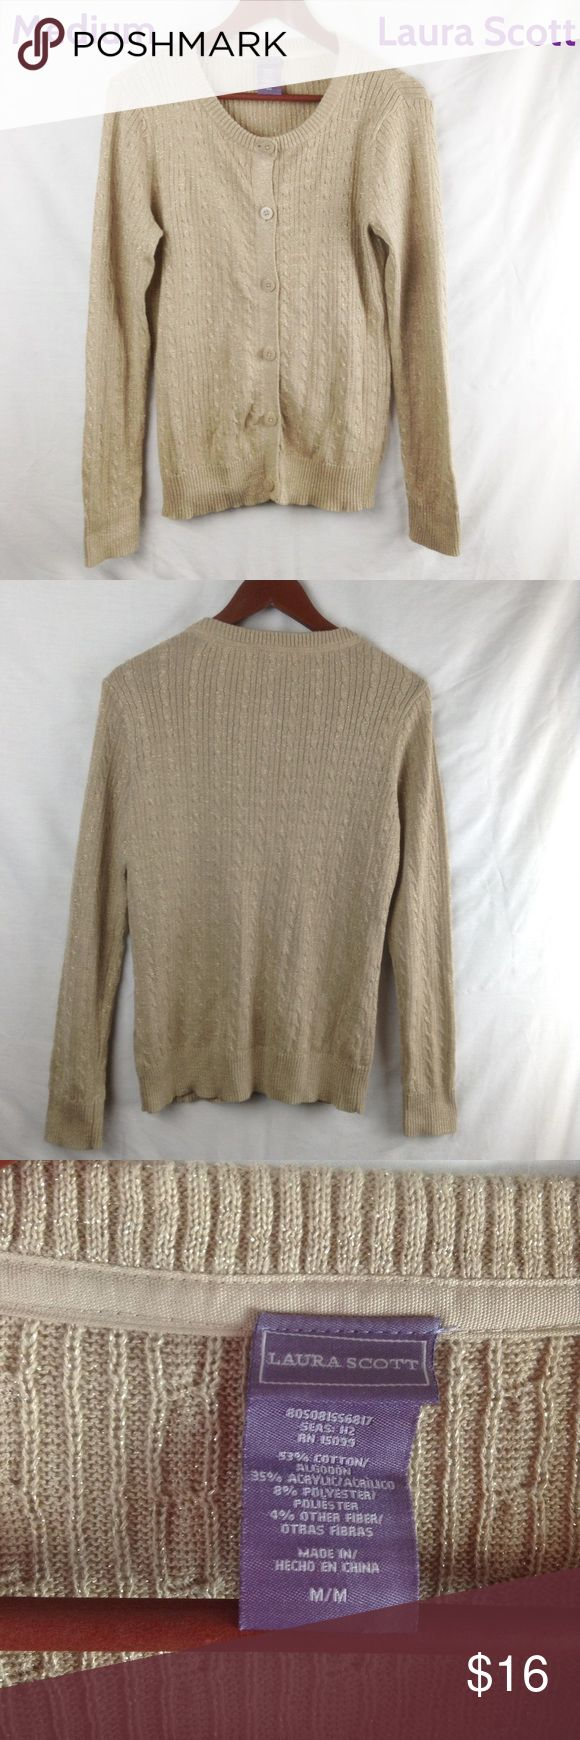 Laura Scott Gold Cardigan This Laura Scott gold cardigan is perfect for the upcoming holidays and all those holiday parties. It is in like new condition and as always all of the clothing from my closet comes from a pet free and smoke free home. Laura Scott Sweaters Cardigans